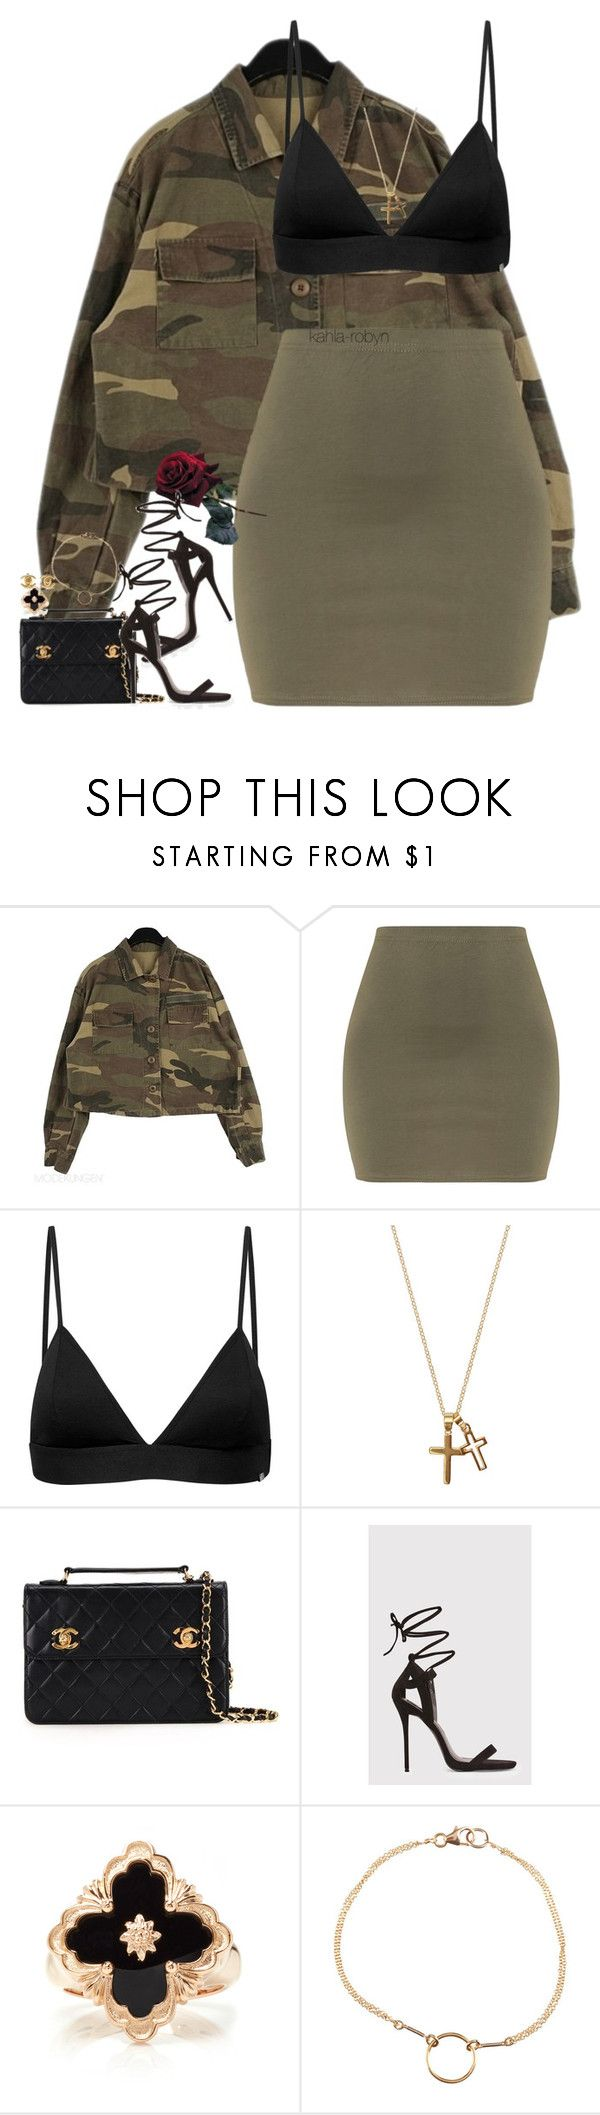 """""""IX   XXVIII   XVII"""" by kahla-robyn ❤ liked on Polyvore featuring Vyayama, Chanel, Buccellati and Dogeared"""